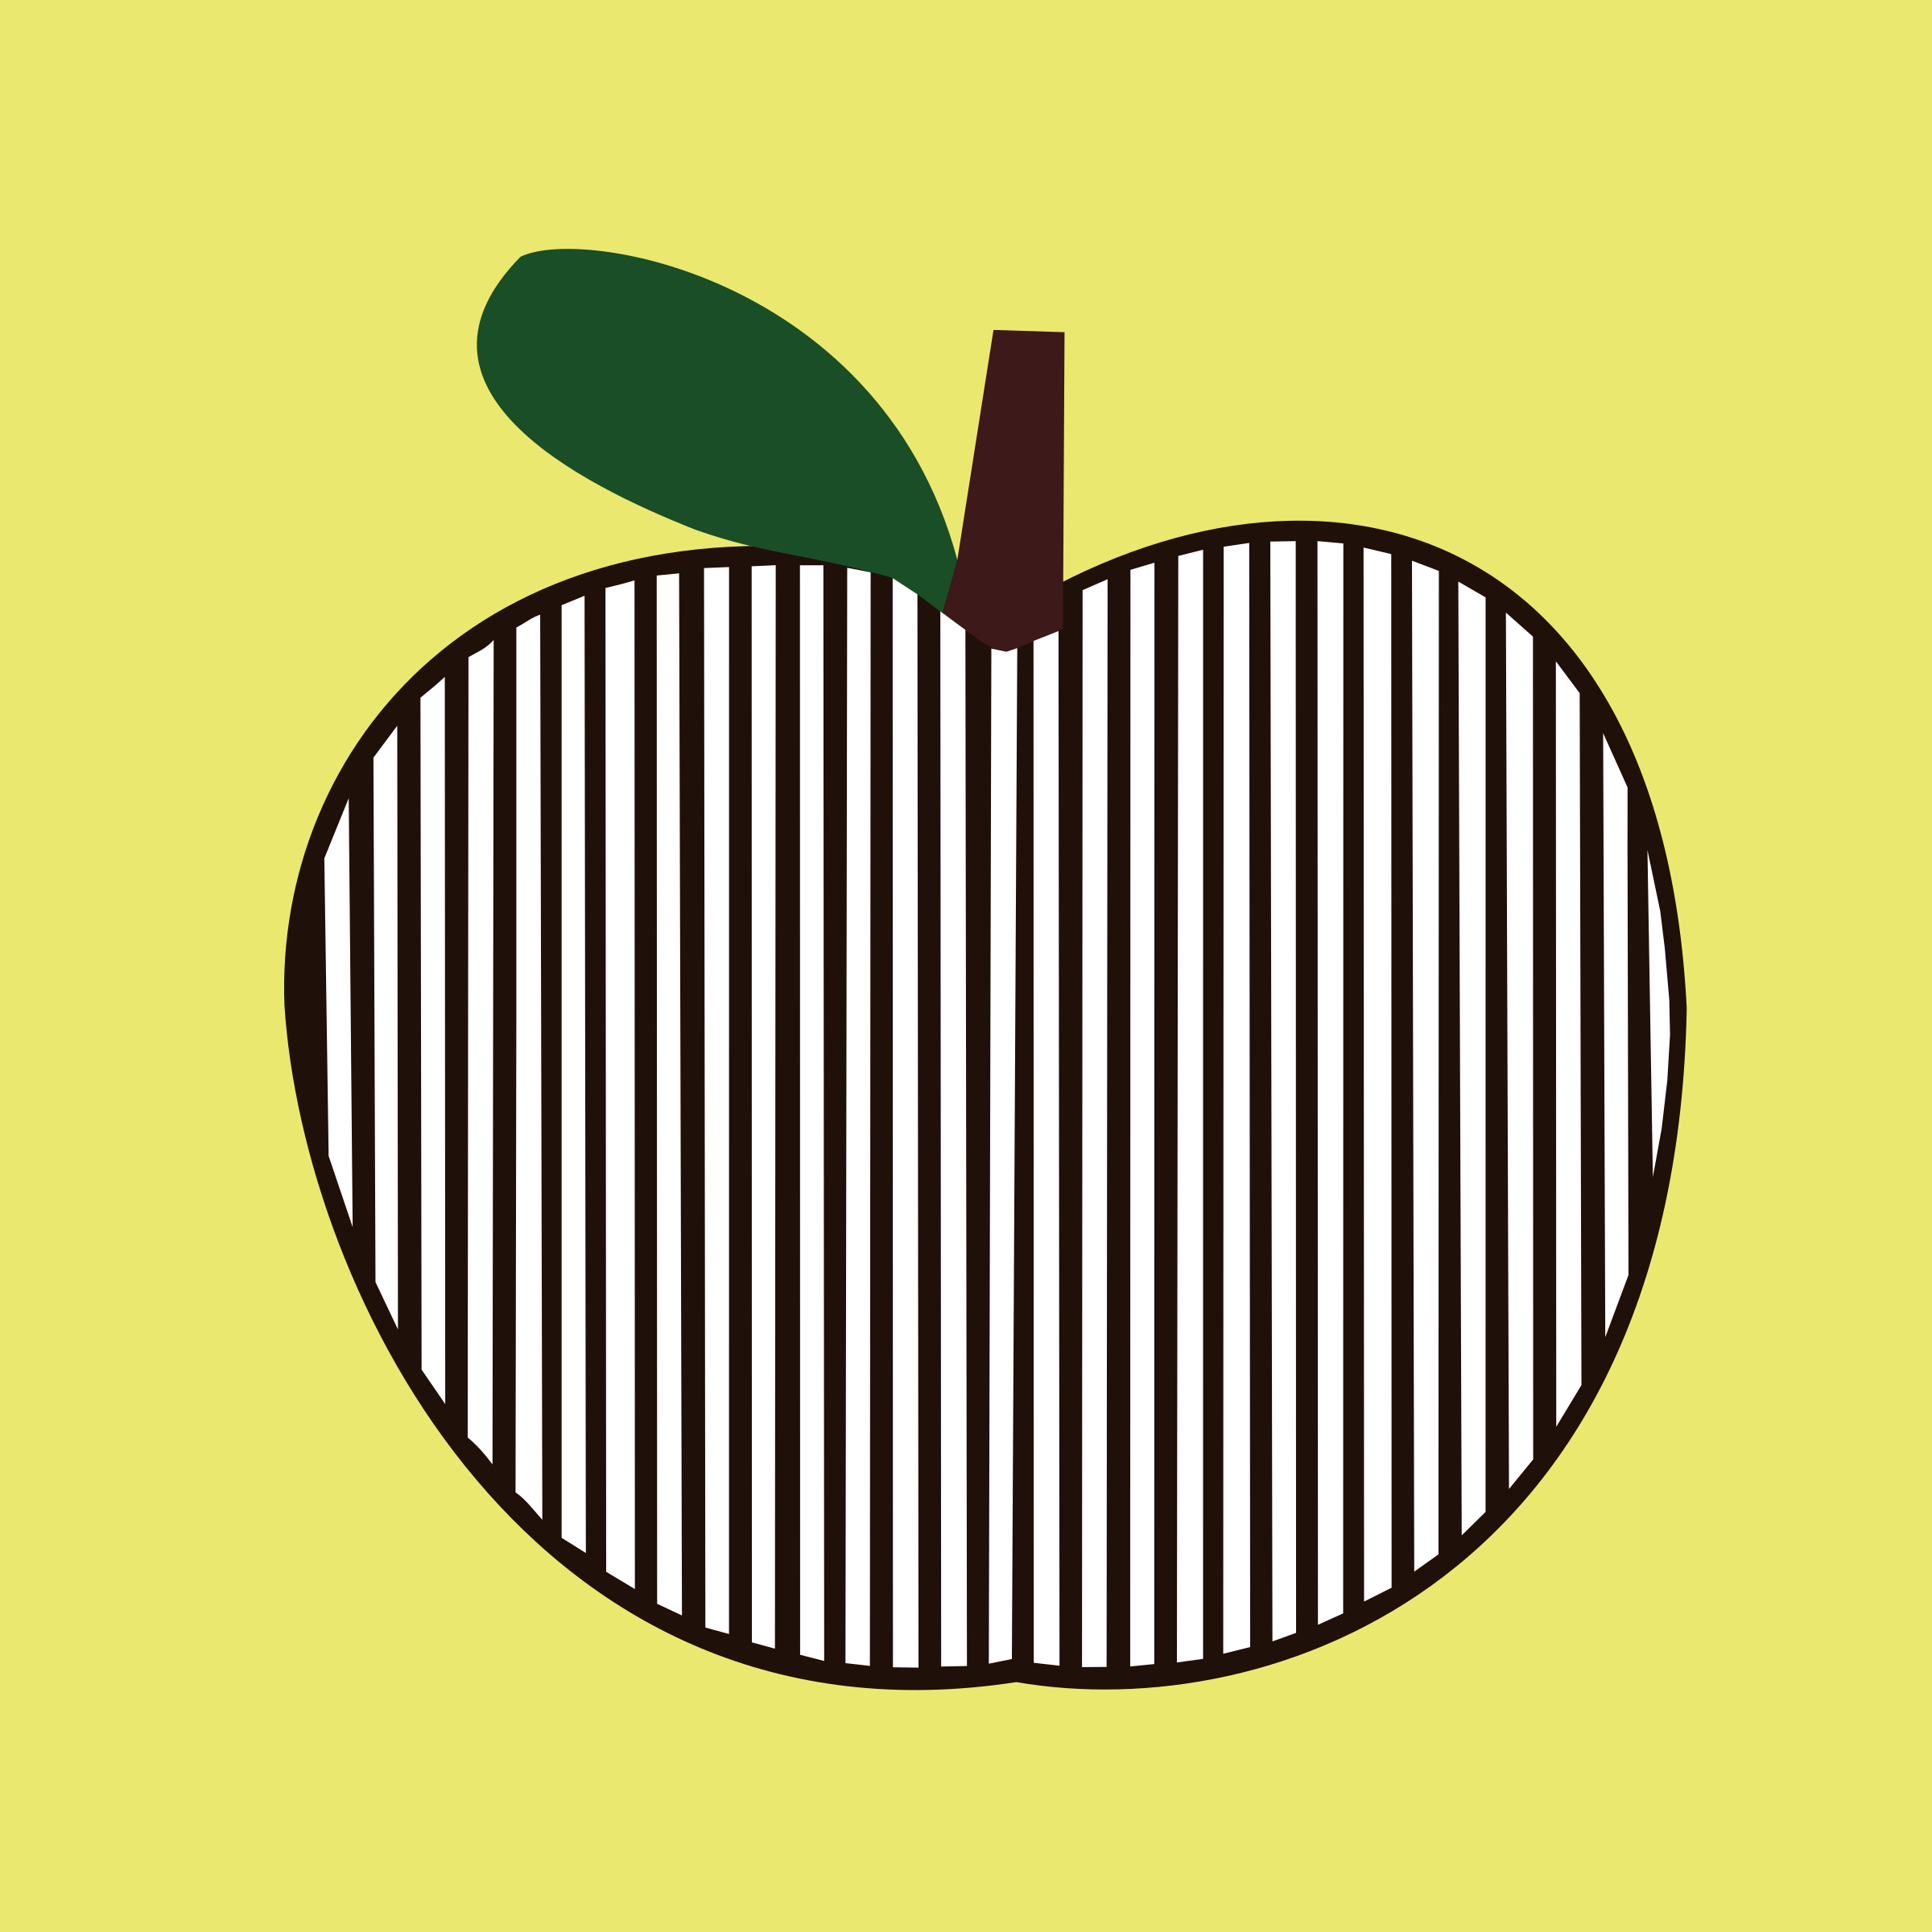 Apple clipart sad (PNG) apple striped IMAGE Clipart